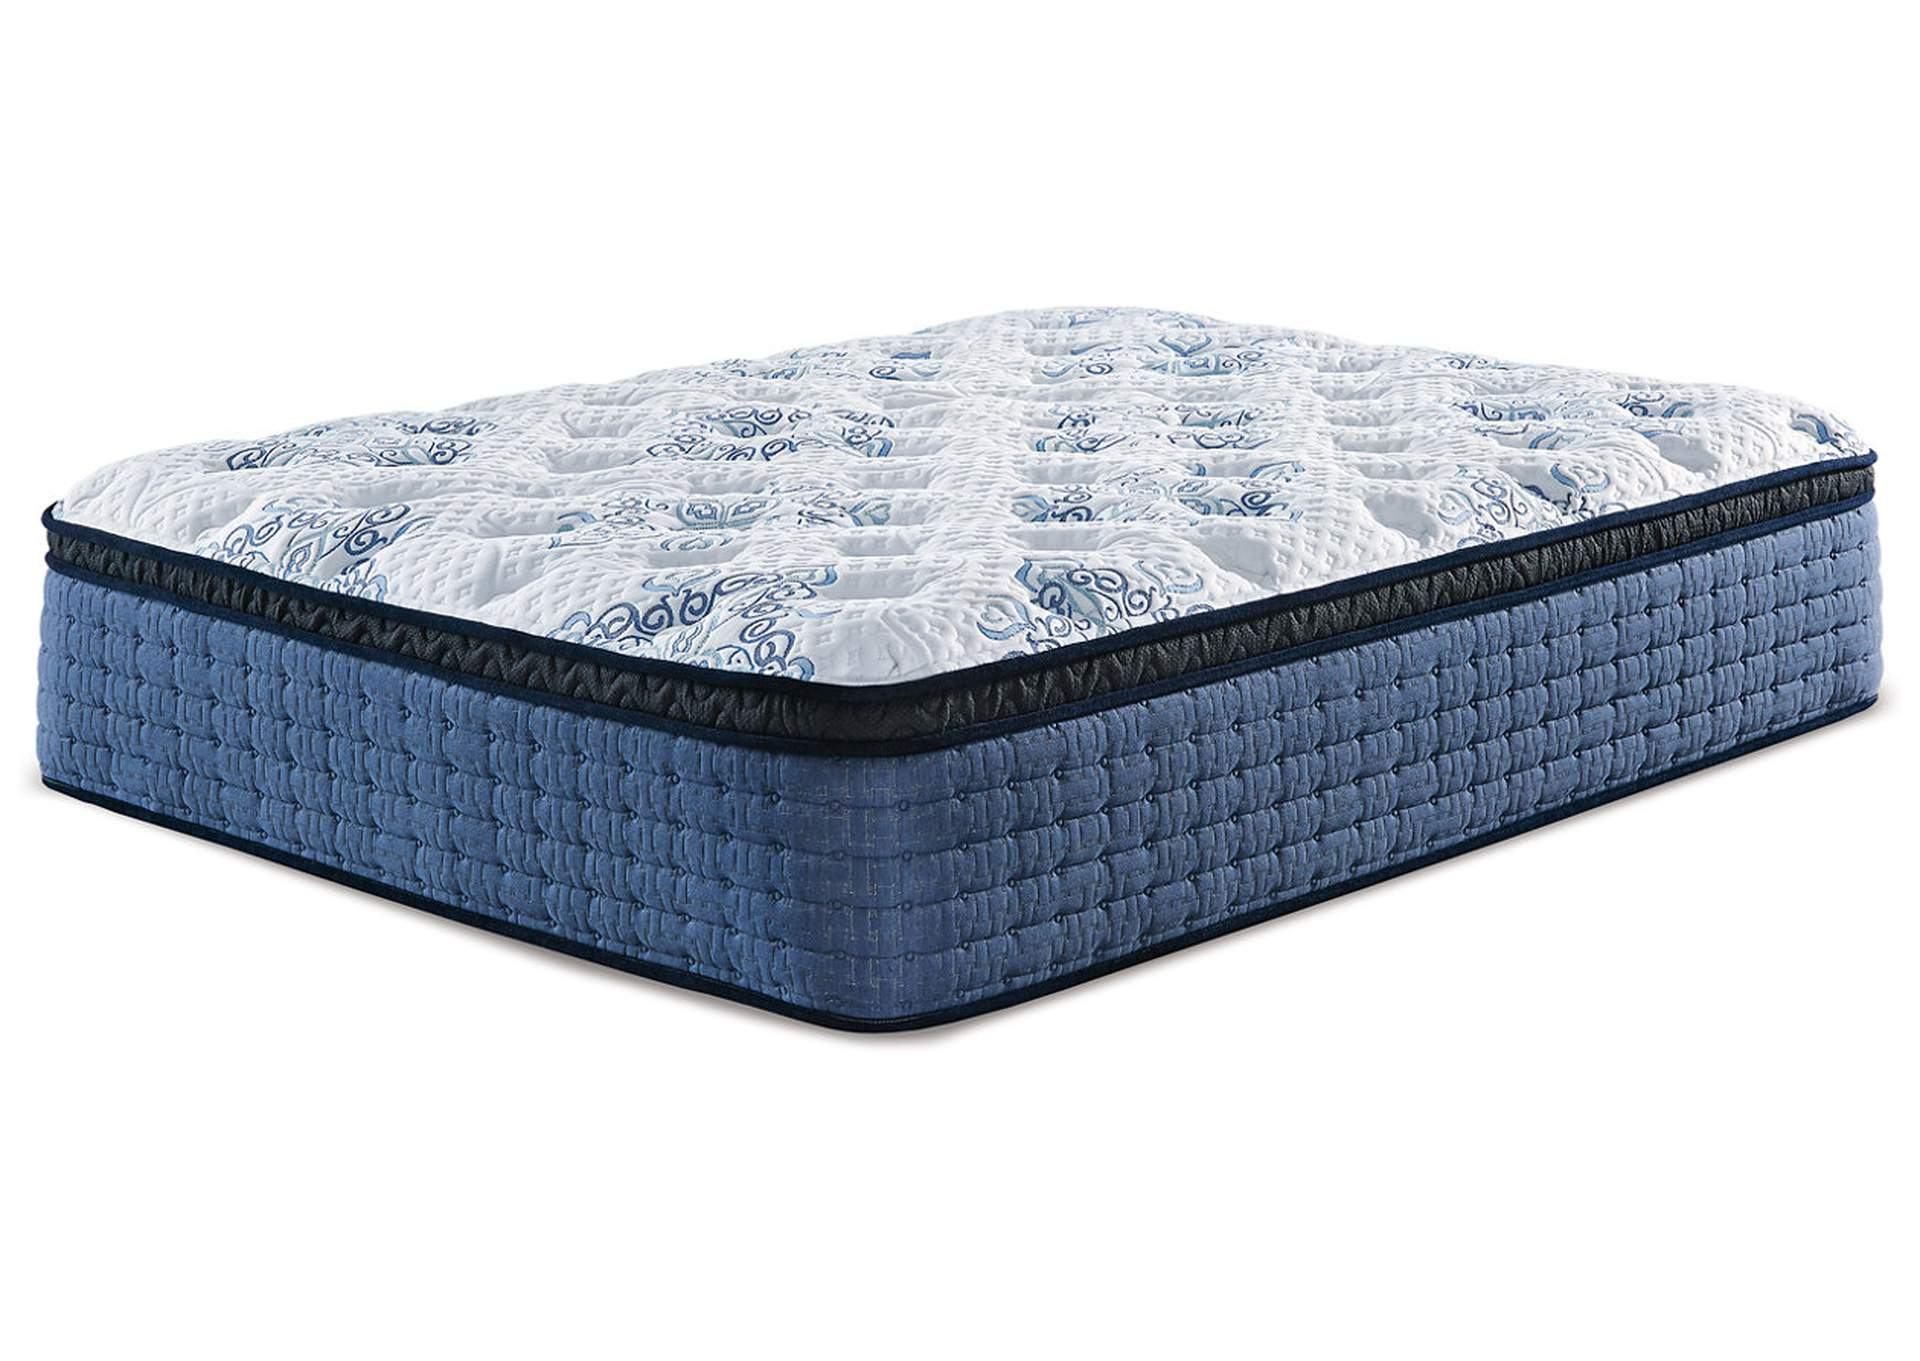 Mt Dana Euro Top White Queen Mattress,Sierra Sleep by Ashley